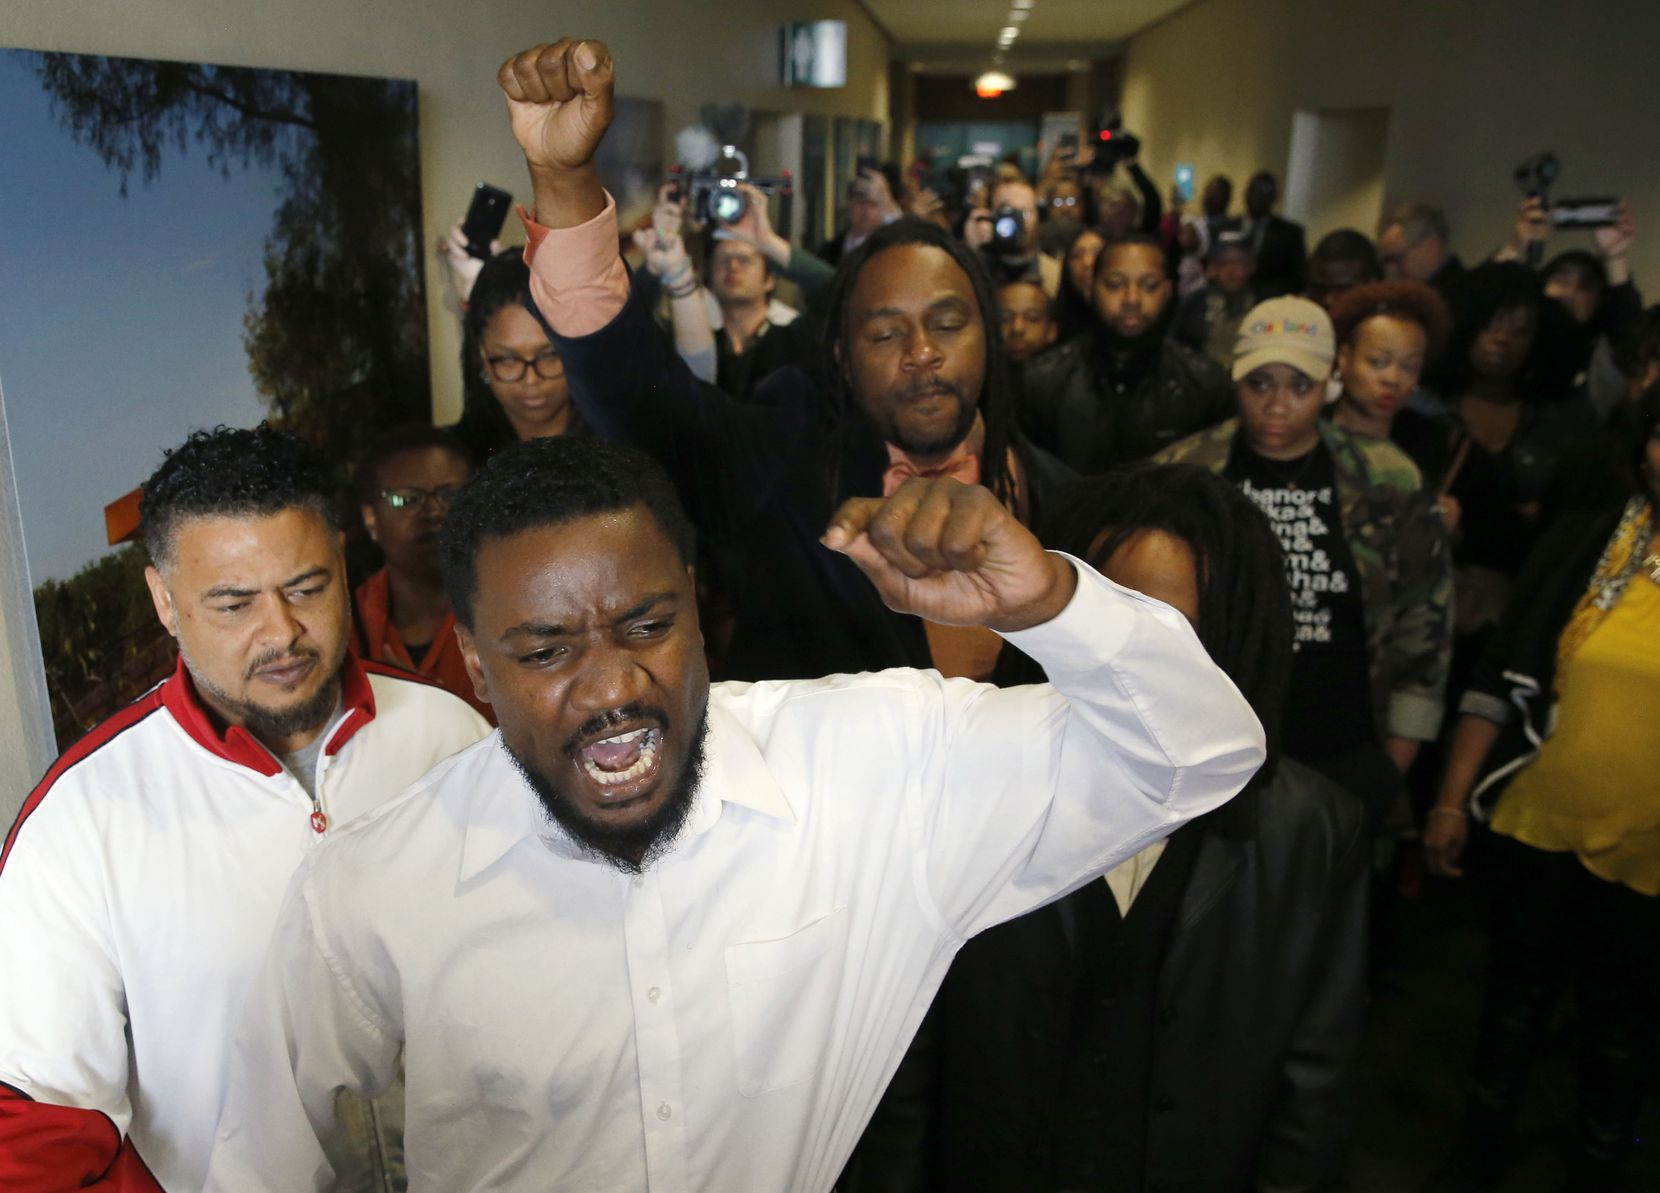 Dominique Alexander (center in white shirt) of Next Generation Action Network leads a protest with others in the hallway of Dallas City Hall in downtown Dallas on Wednesday, April 3, 2019 in Dallas. Alexander and others came to protest a day after a warrant was issued for L'Daijohnique Lee in regards to the Deep Ellum assault with Austin Shuffield.